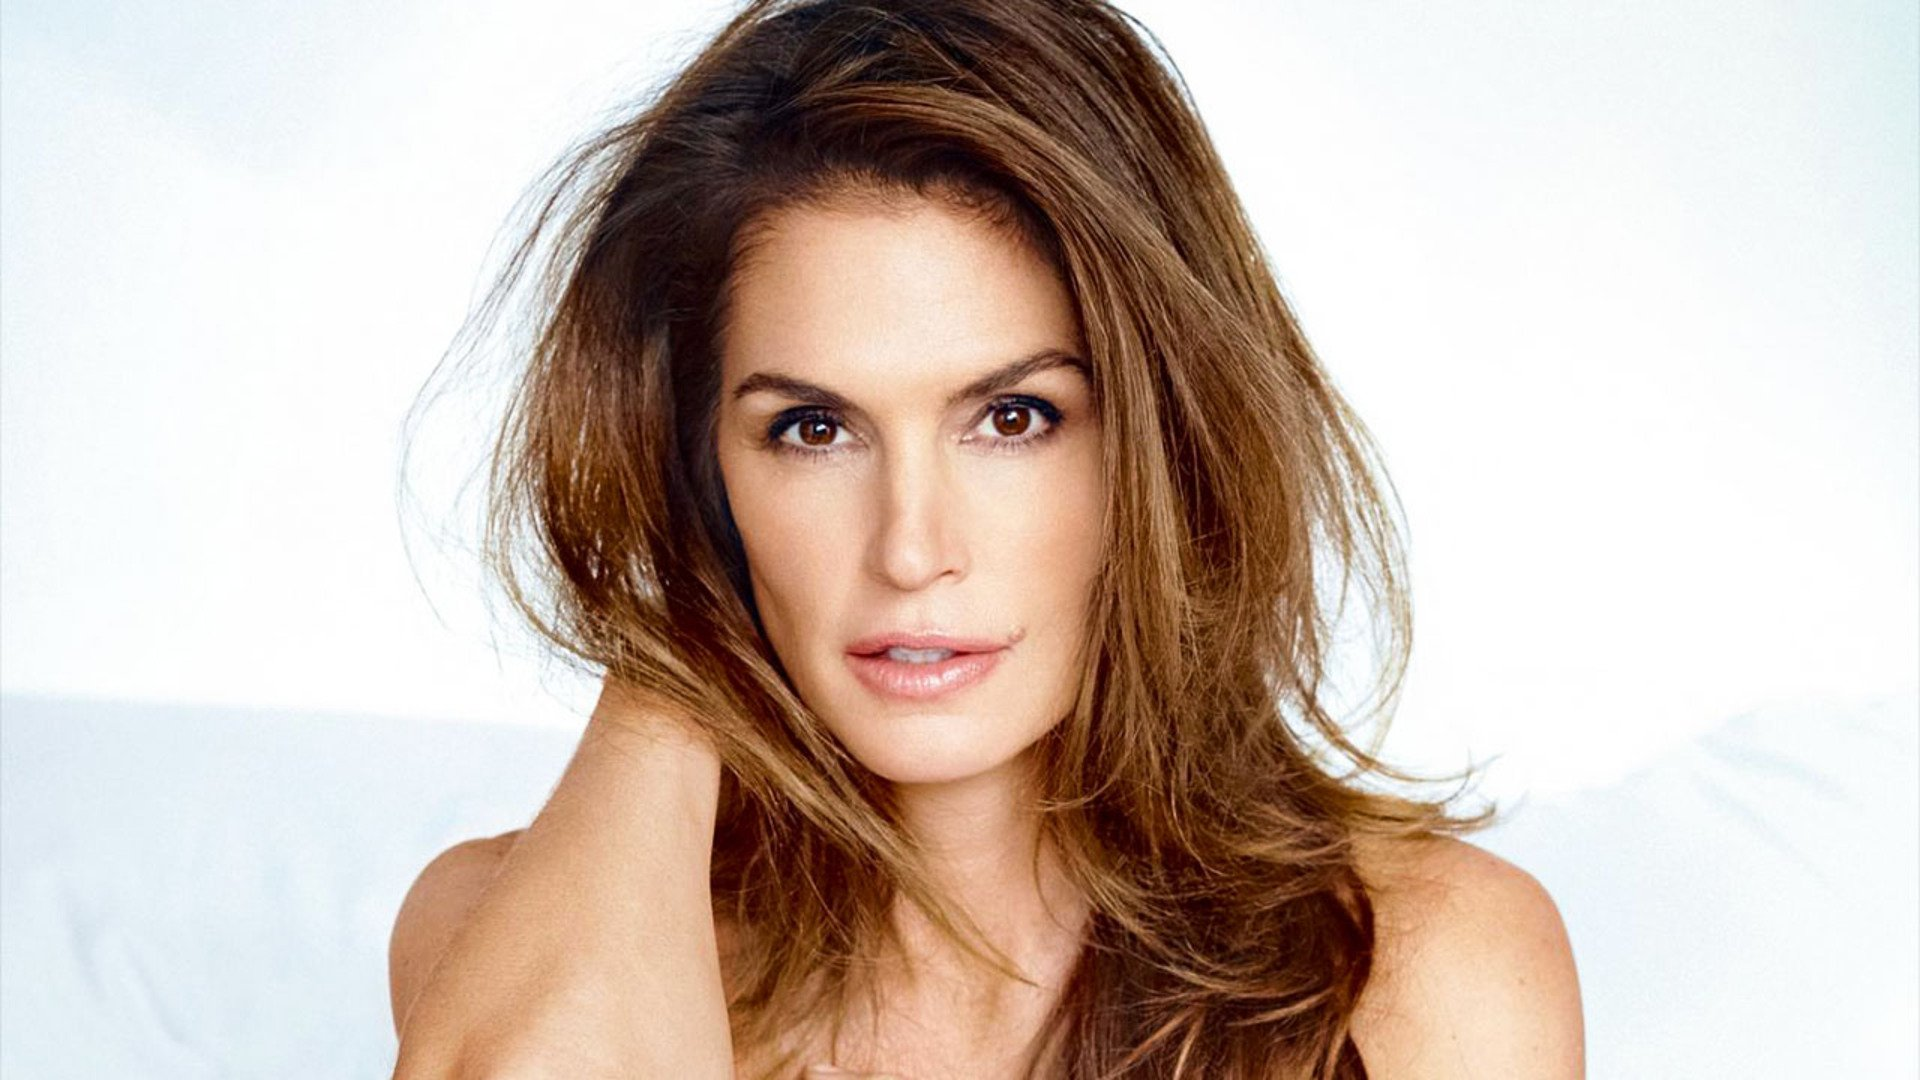 Cindy Crawford Wide wallpapers